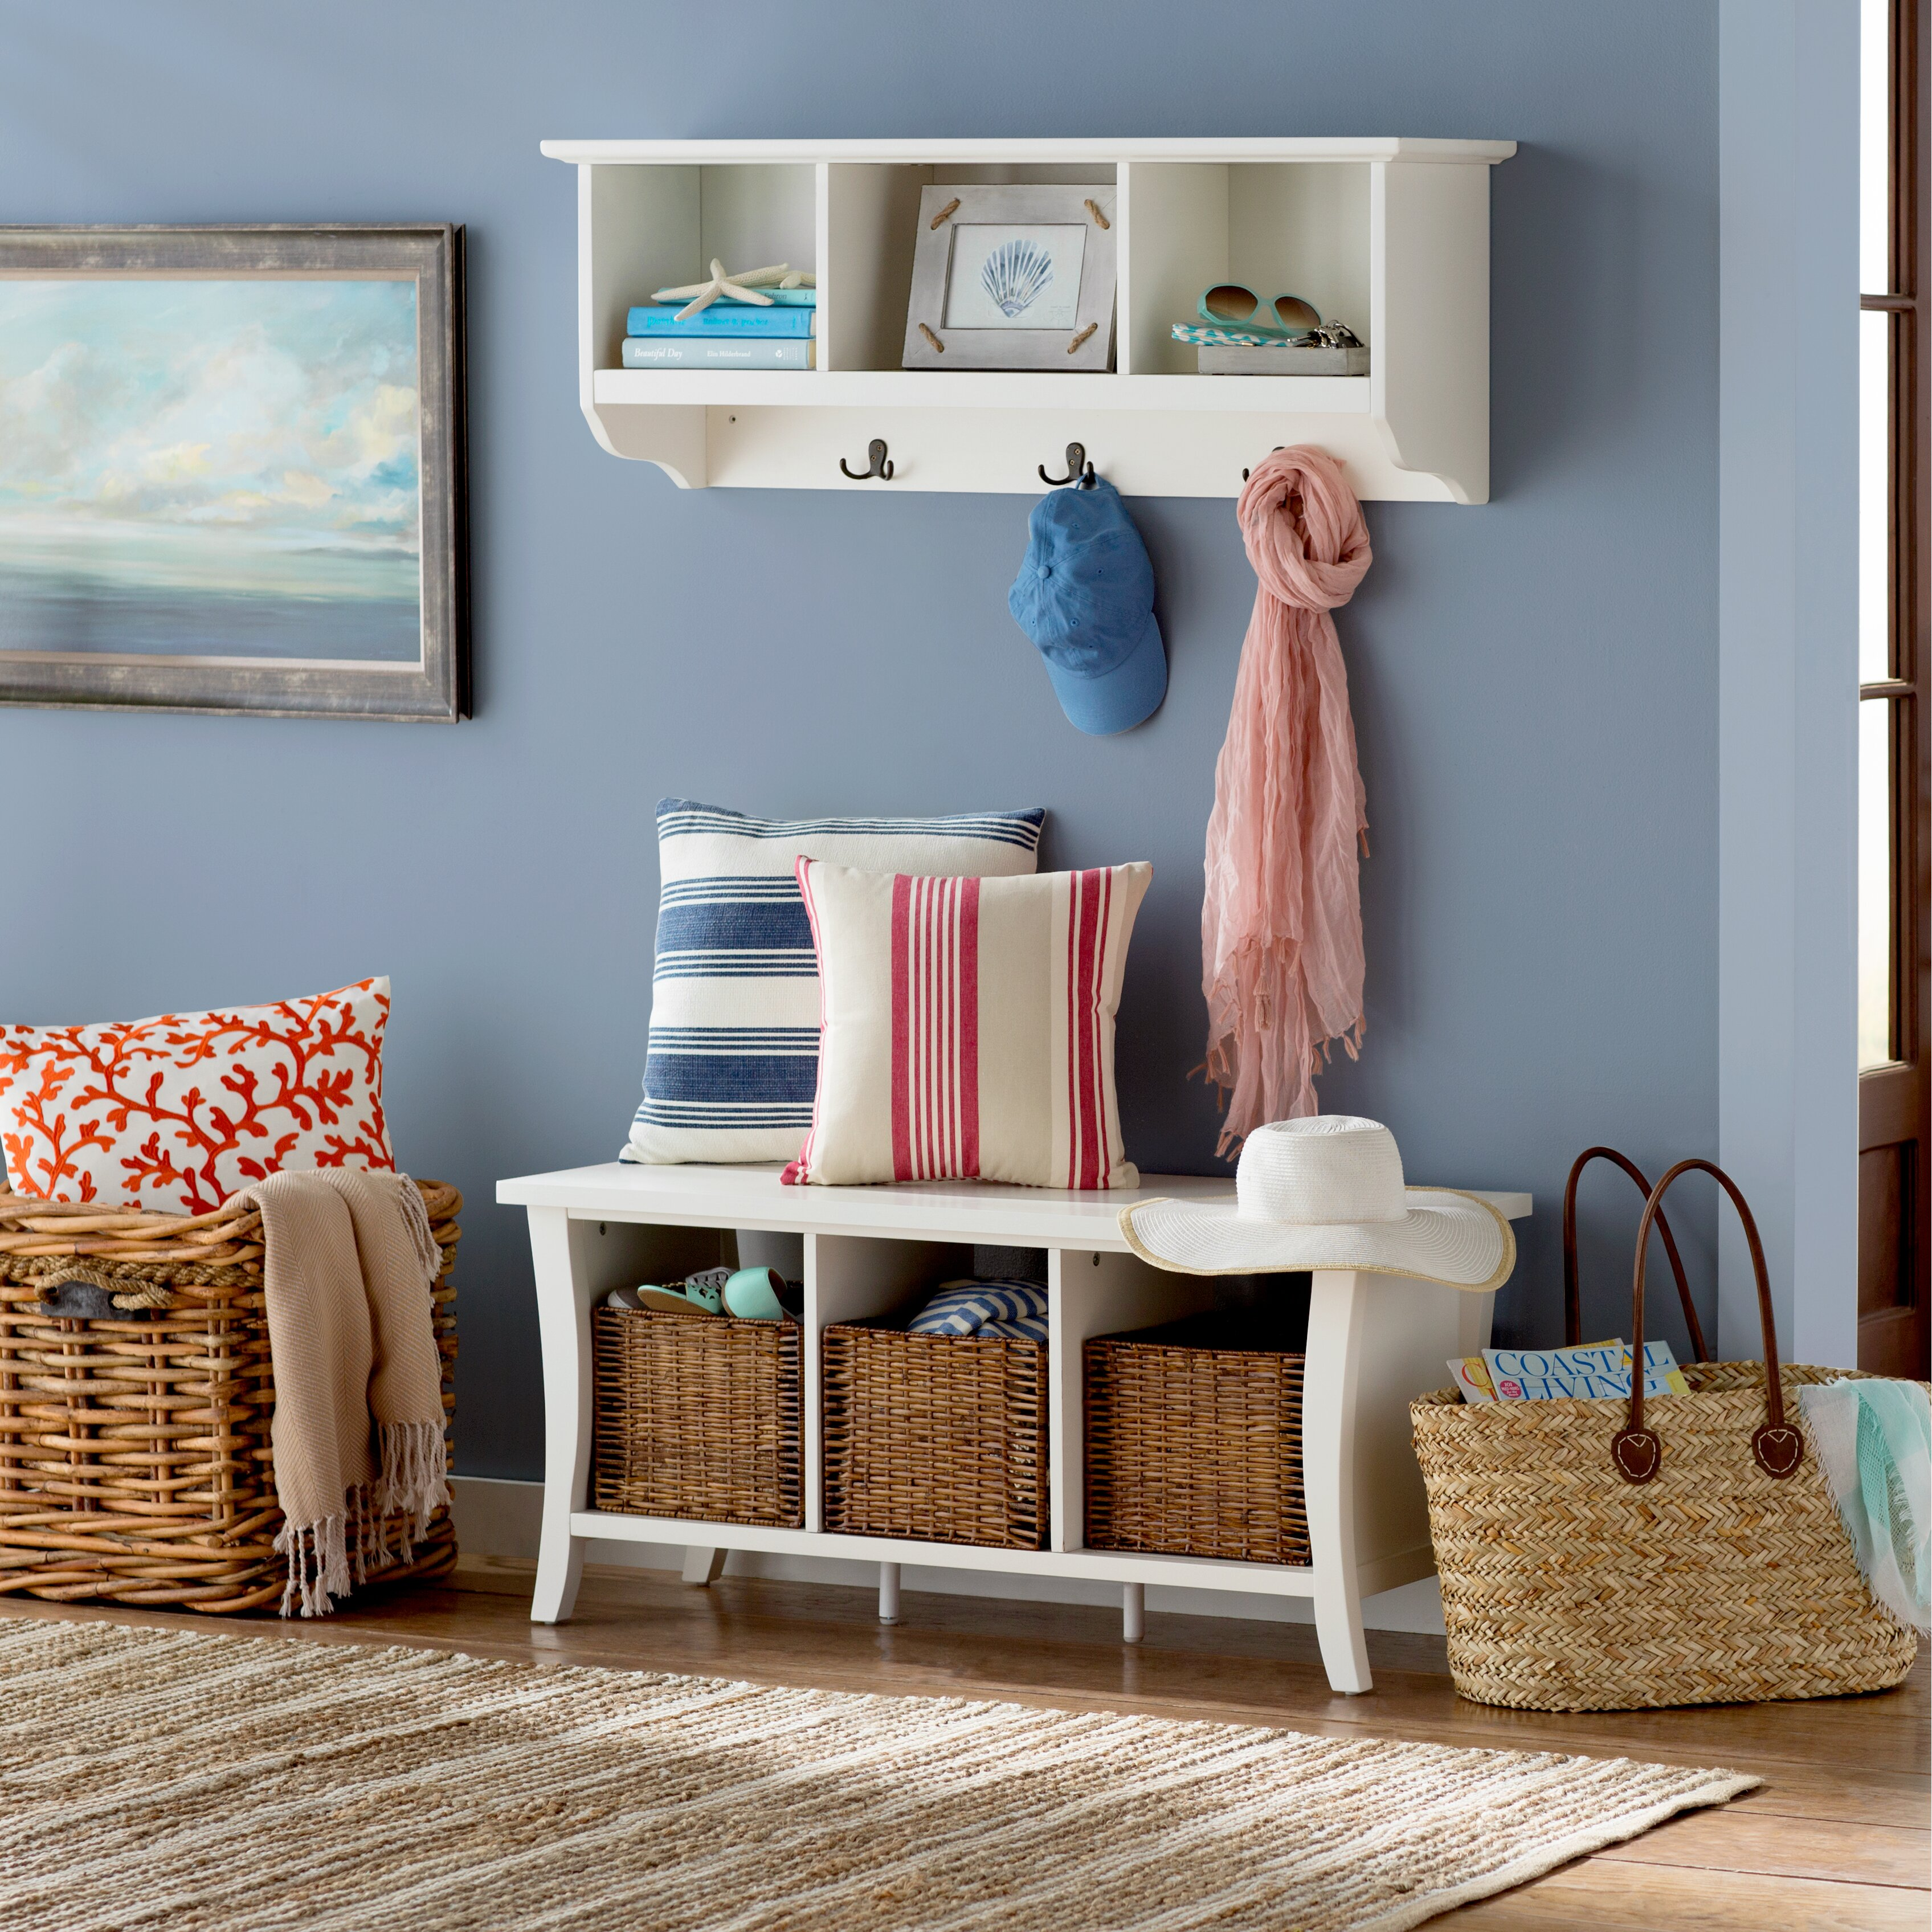 Living Room Bench With Storage